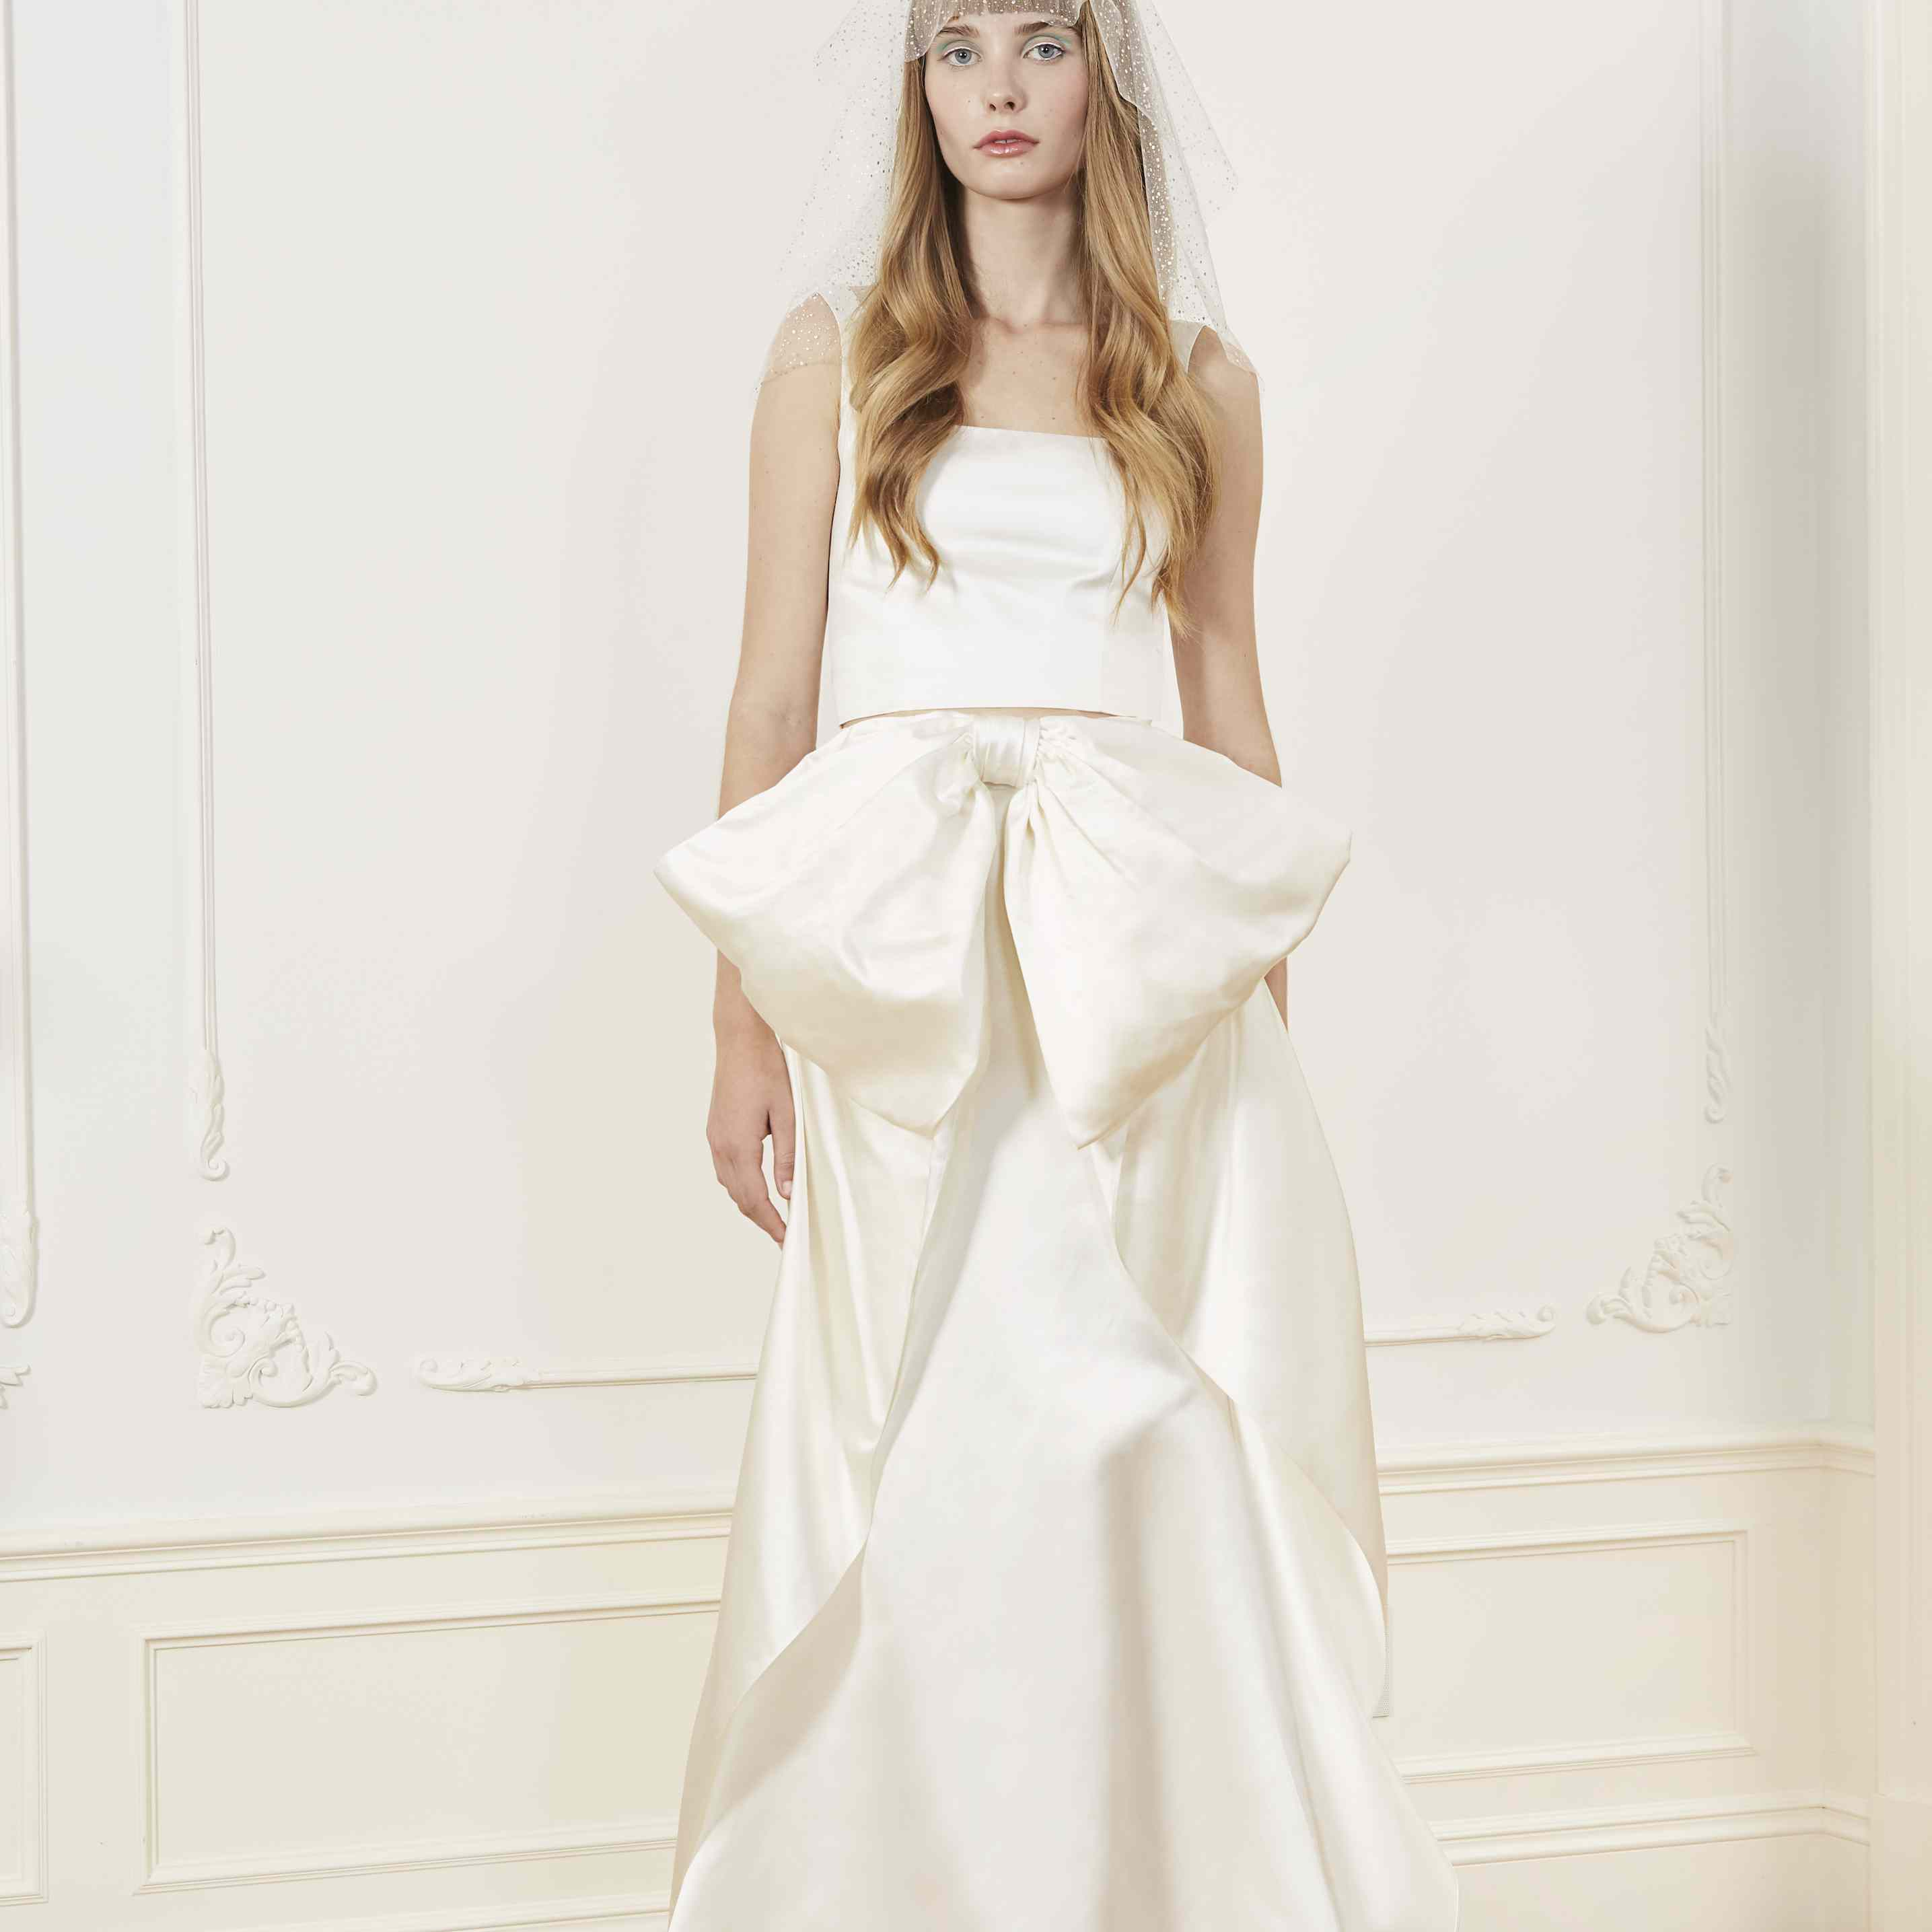 Model in two-piece wedding tank and skirt